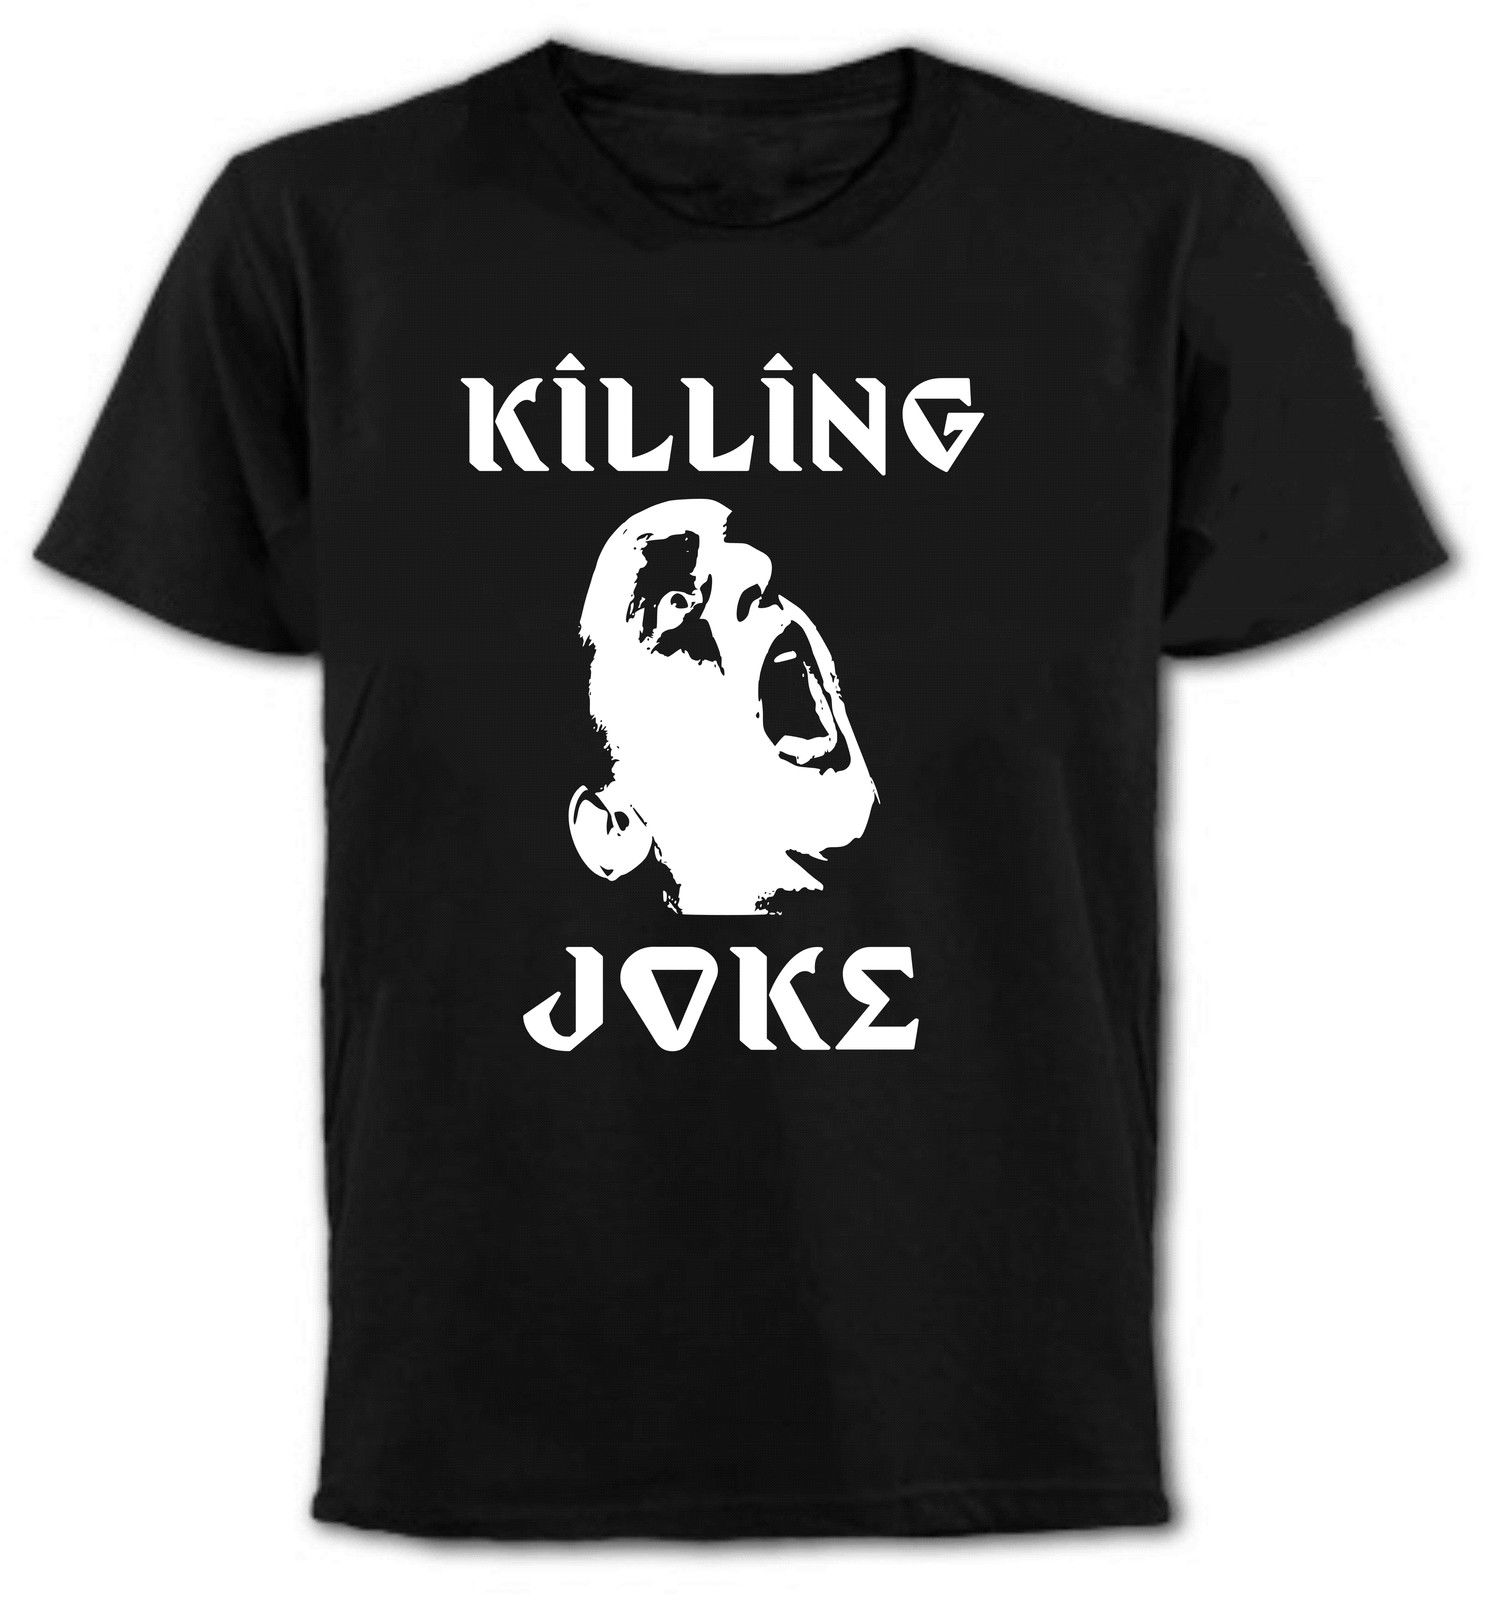 New Killing Joke *Pylon English Punk Rock Band Mens Black T-Shirt Size S To 3XL New Design Cotton Male T Shirt Designing